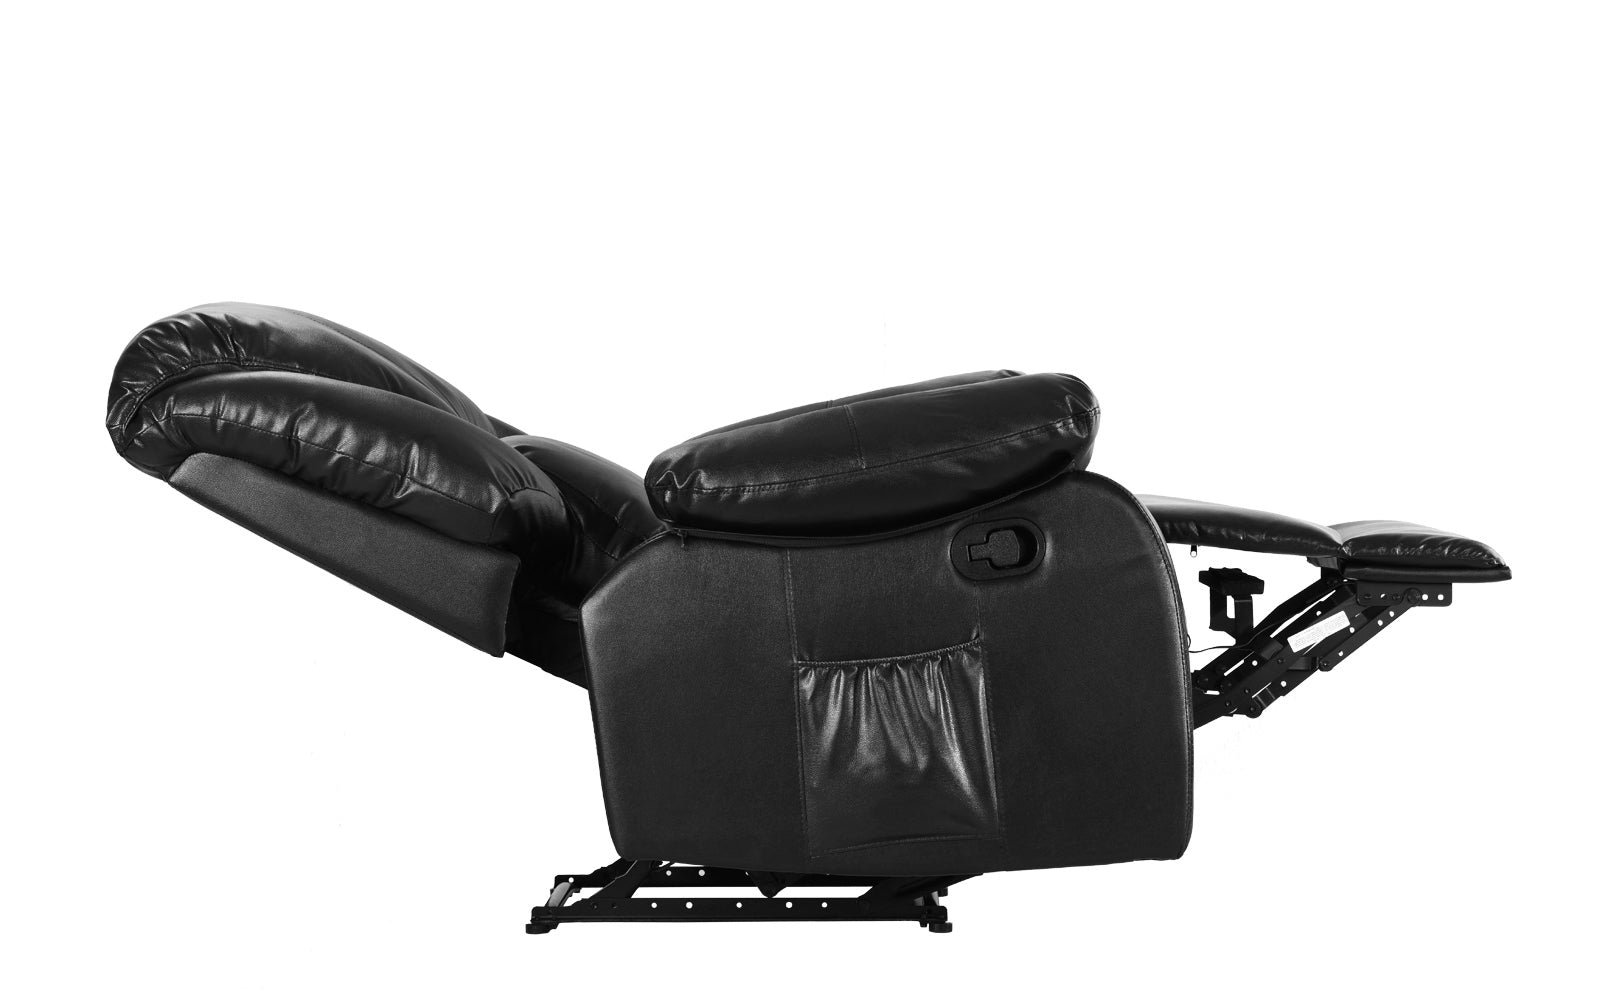 ... Bach Full Body Massage Recliner Chair Black Reclined ...